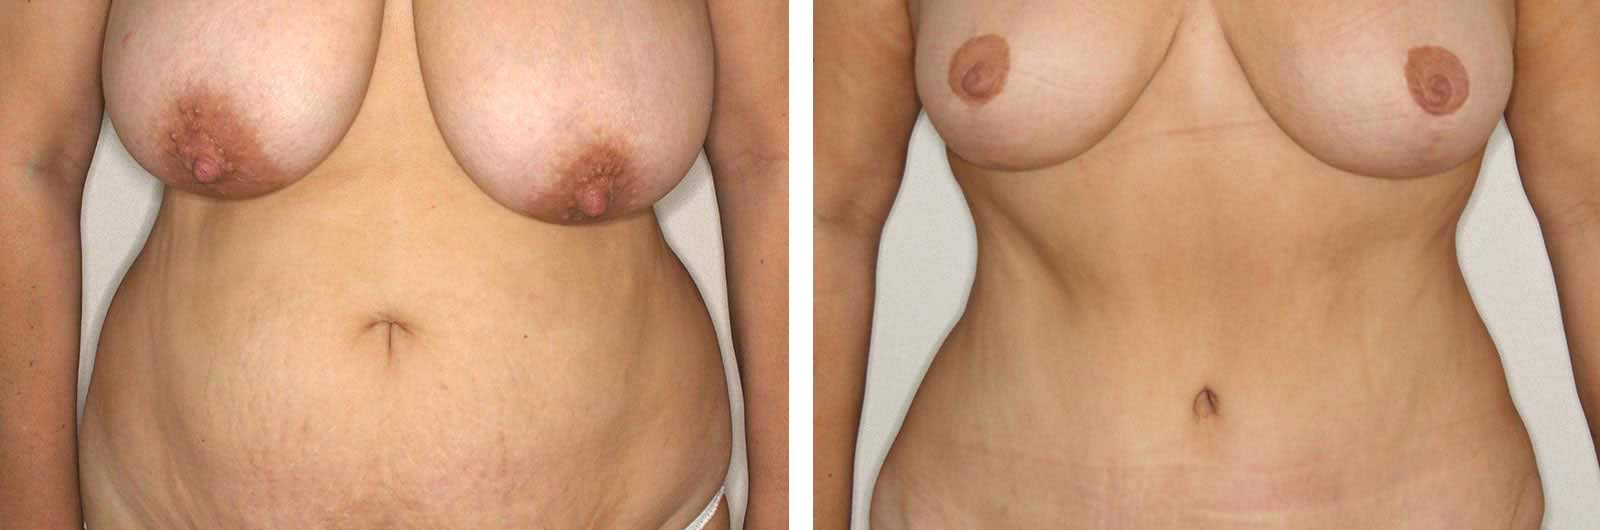 ELMA-liposuccion-abdominoplastia